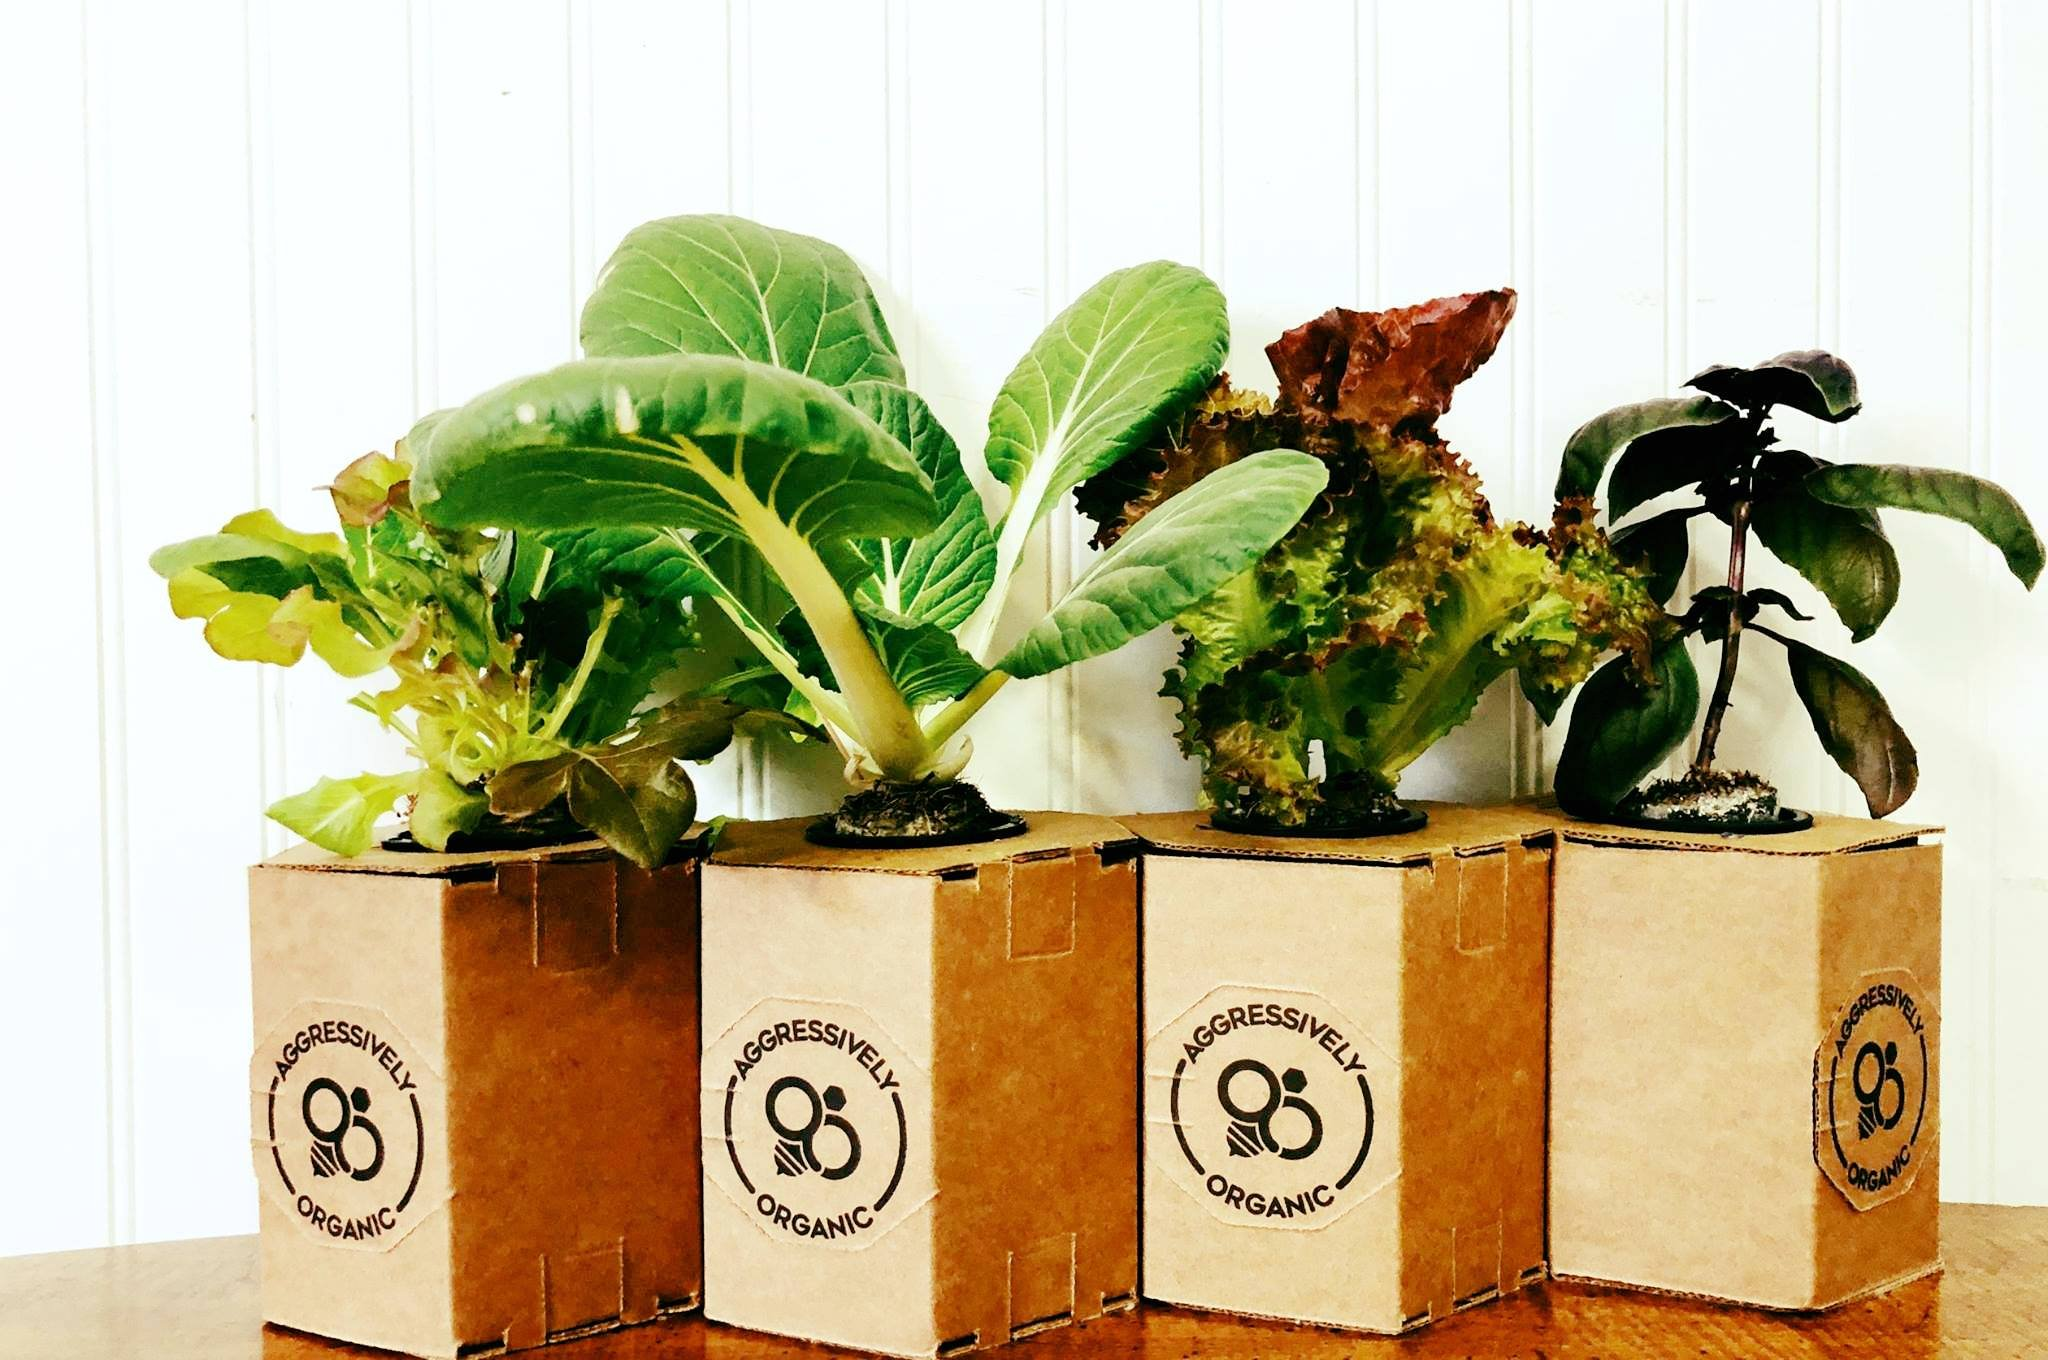 The company's starting point is five types of lettuces and herbs, including arugula, basil, and specialty lettuces that aren't commercially grown.